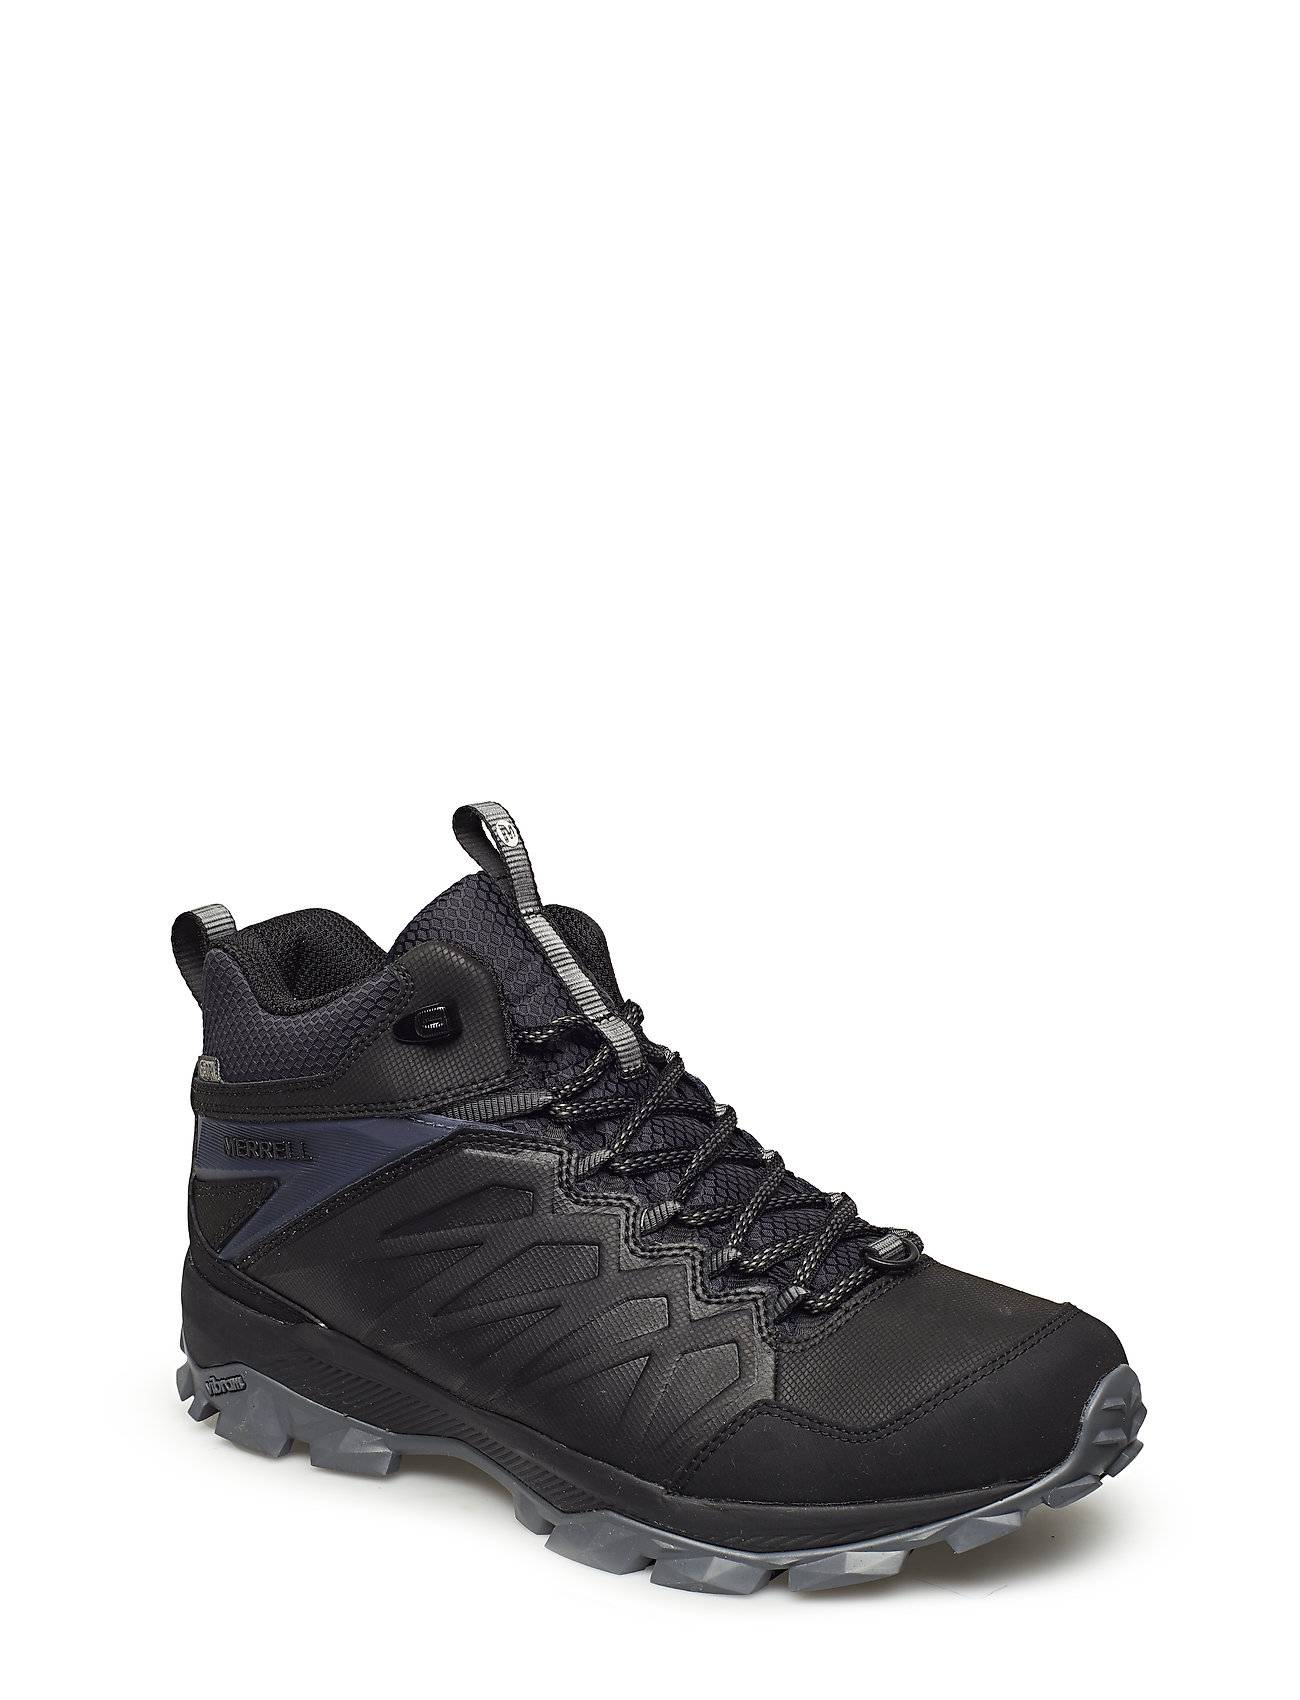 Merrell Thermo Freeze 6  Wp - Arctic Grip